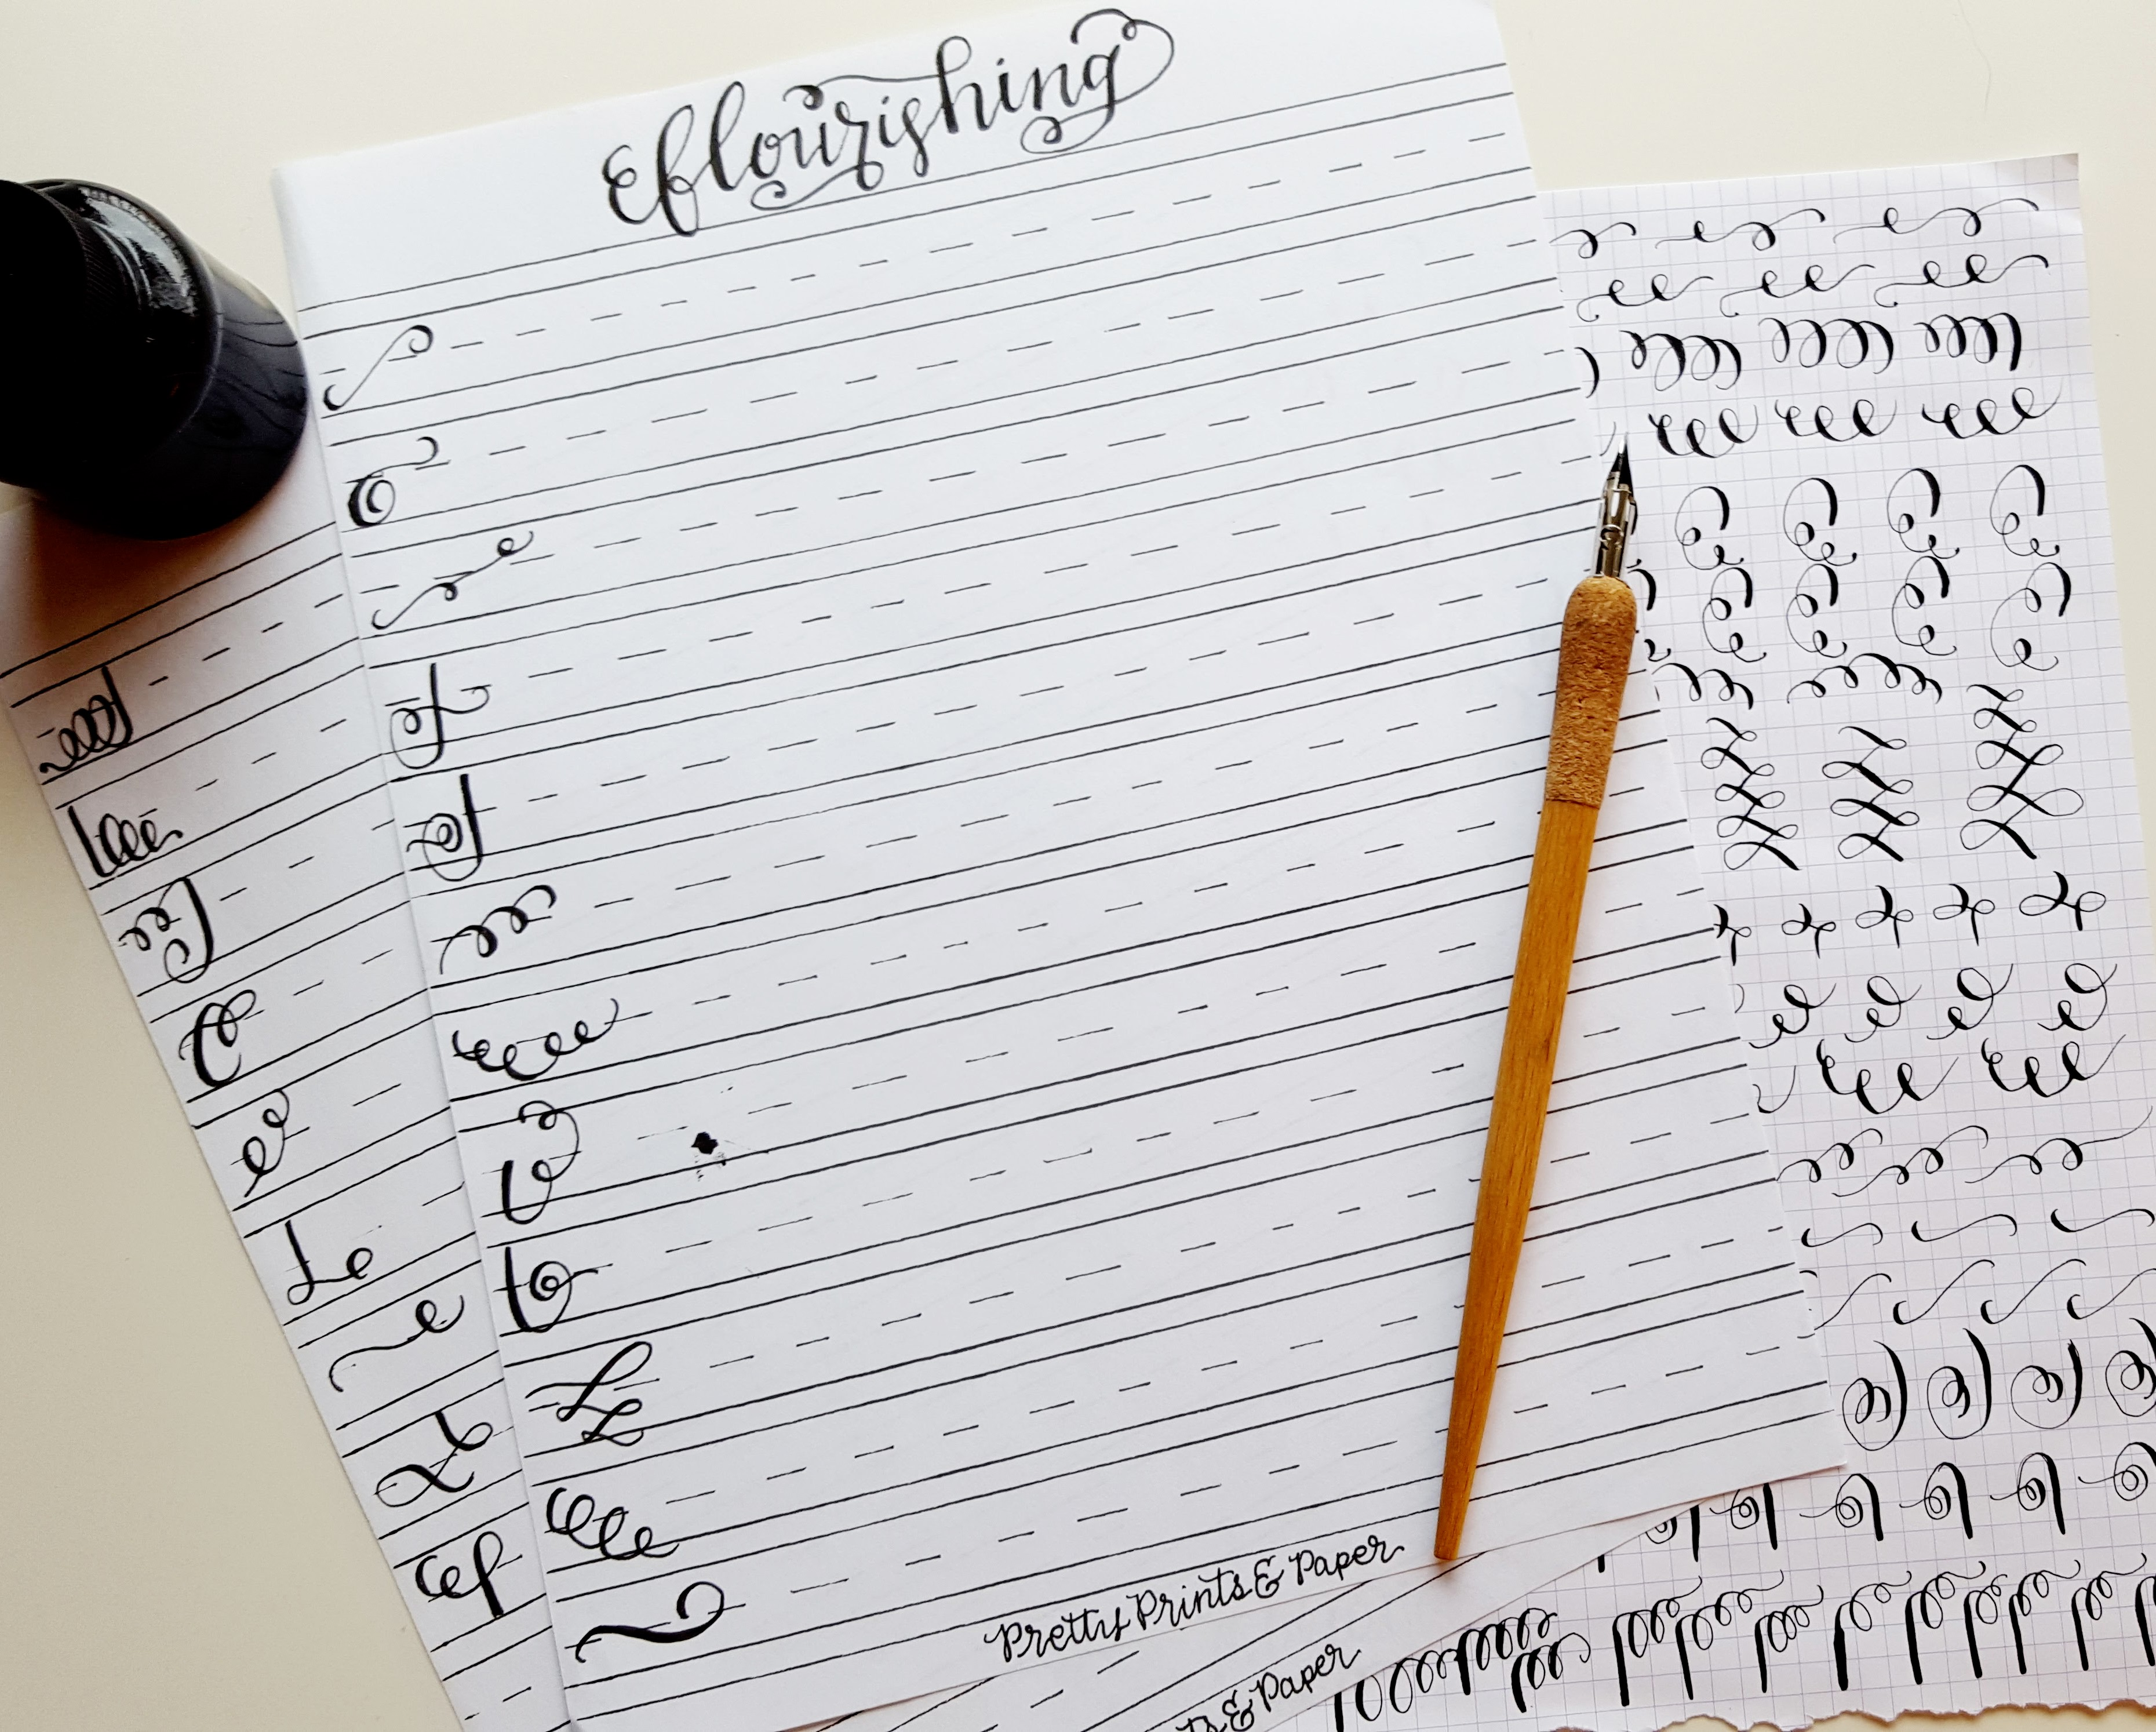 photograph about Free Calligraphy Worksheets Printable identify How in direction of: Calligraphy Flourishes + Totally free Printable Really